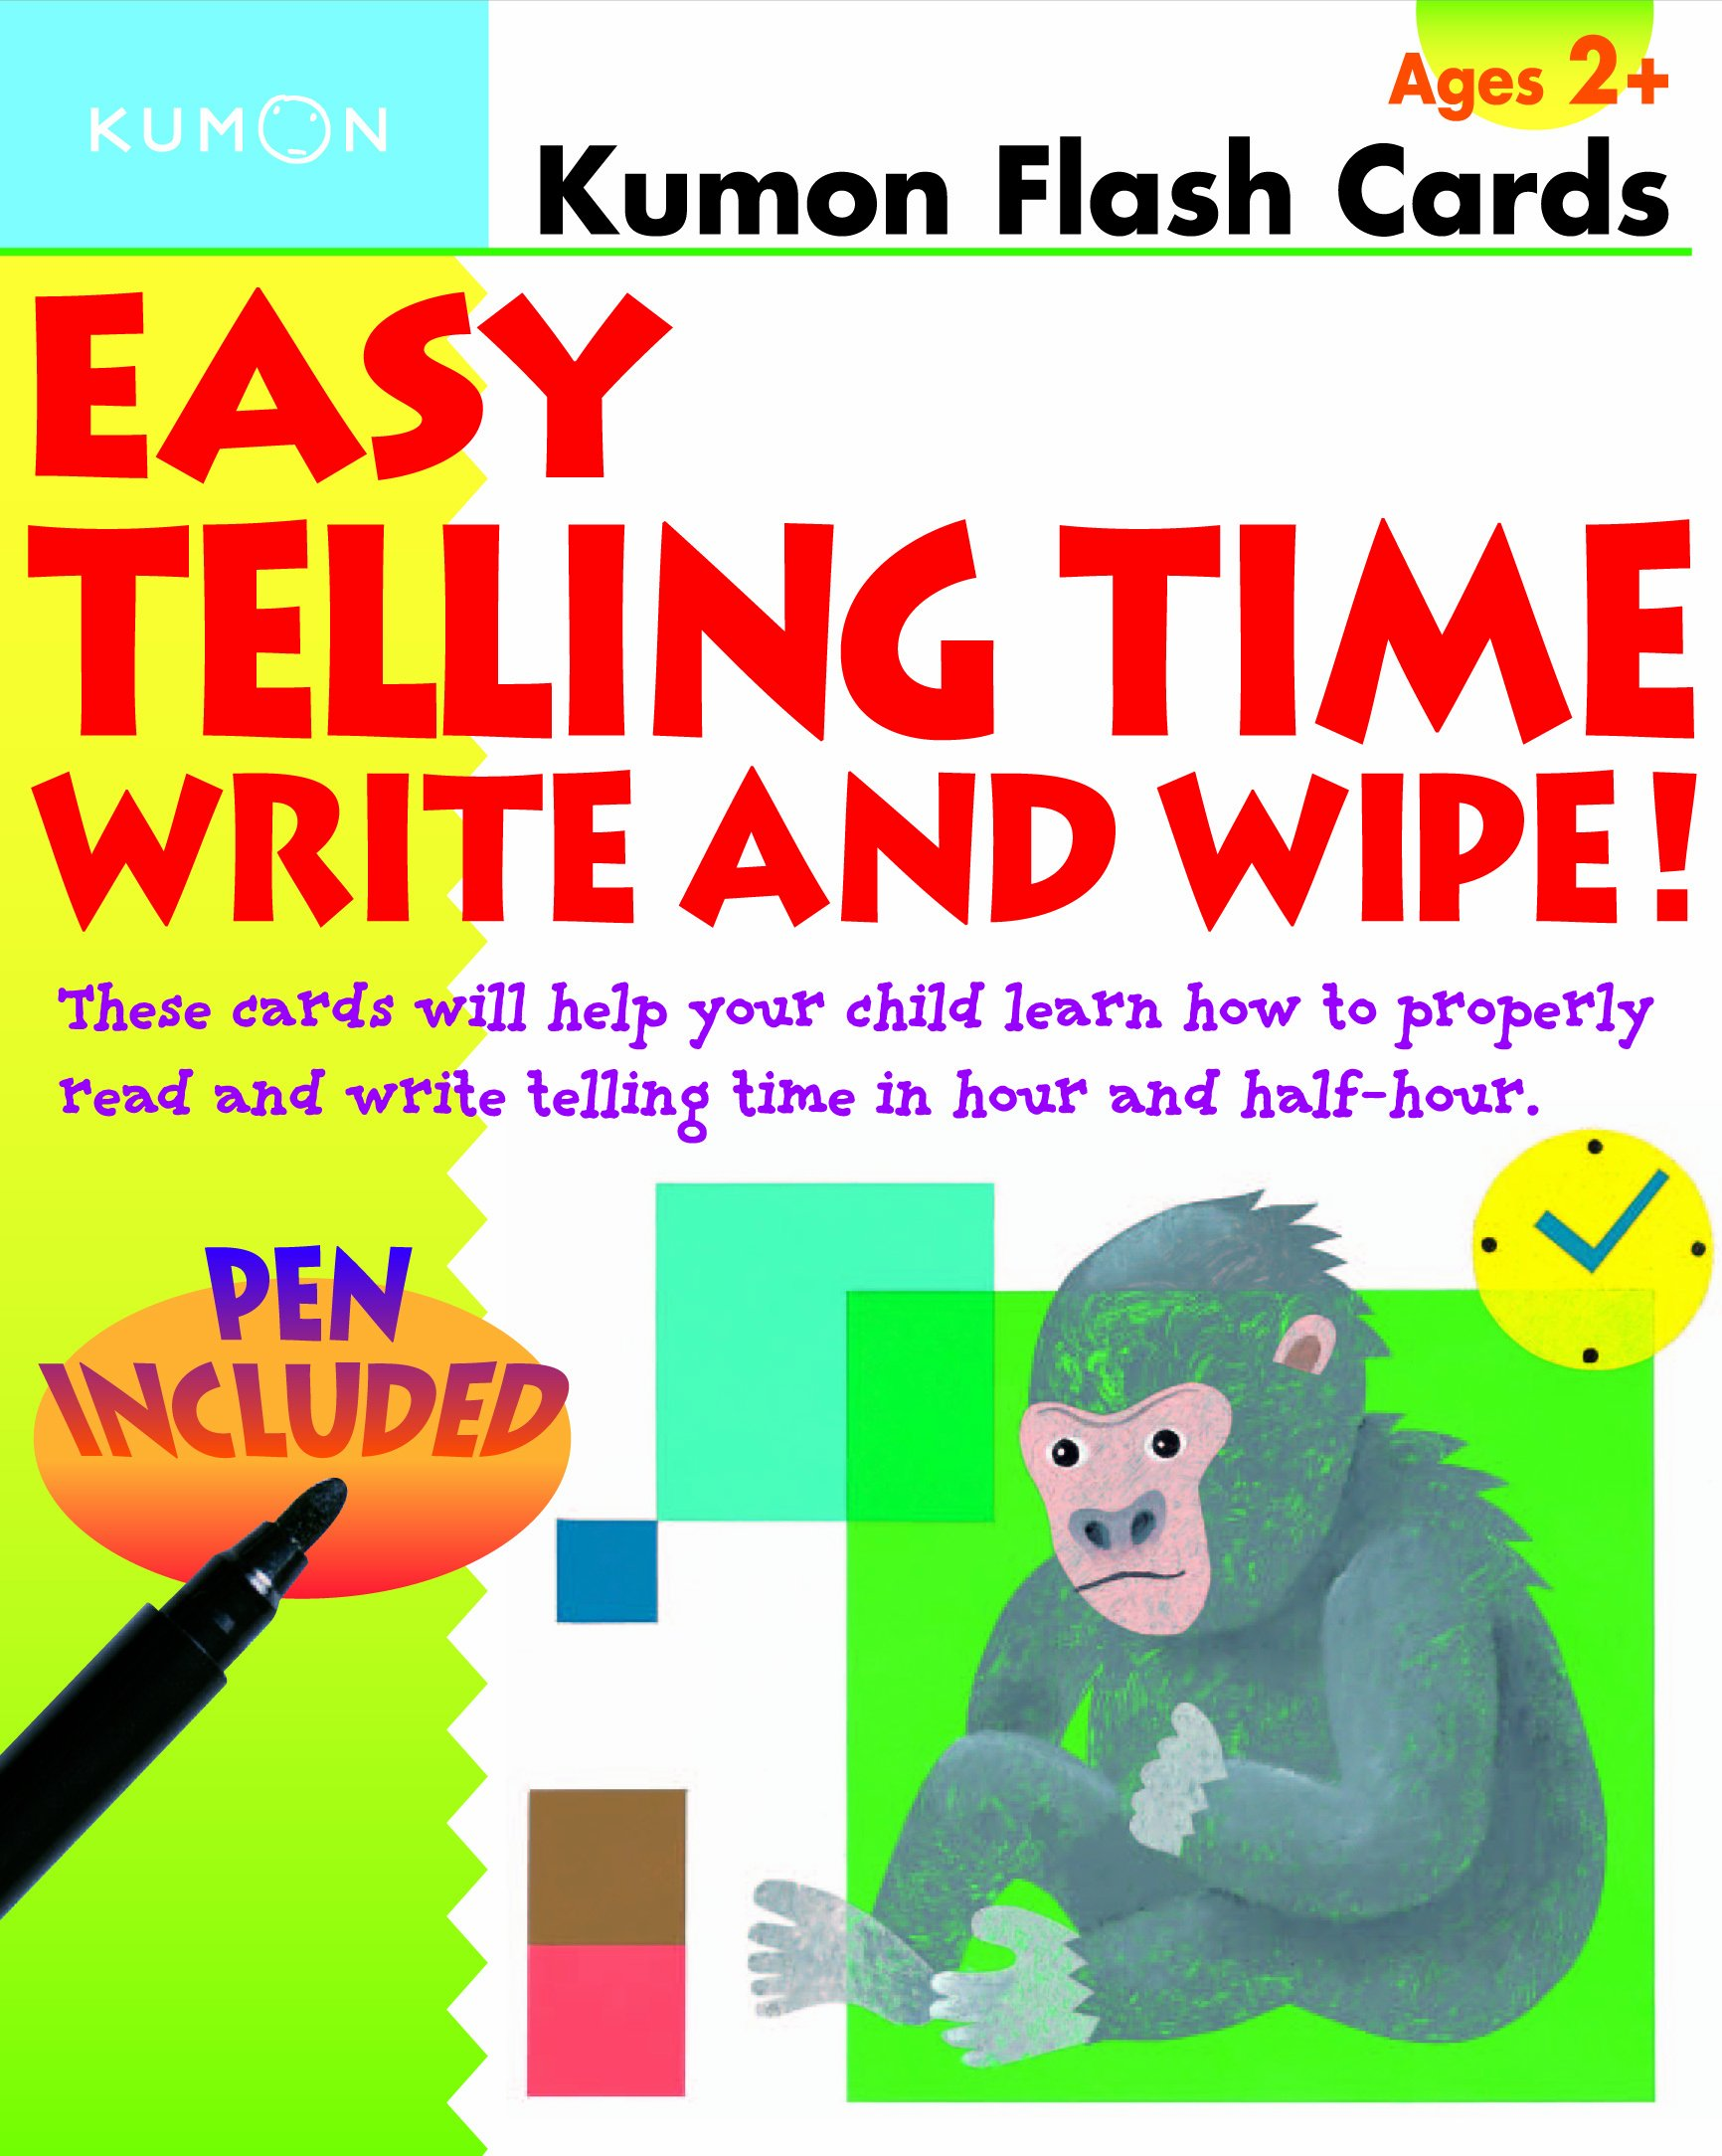 worksheet Telling Time Flash Cards easy telling time write and wipe kumon flash cards publishing 9781933241456 amazon com books